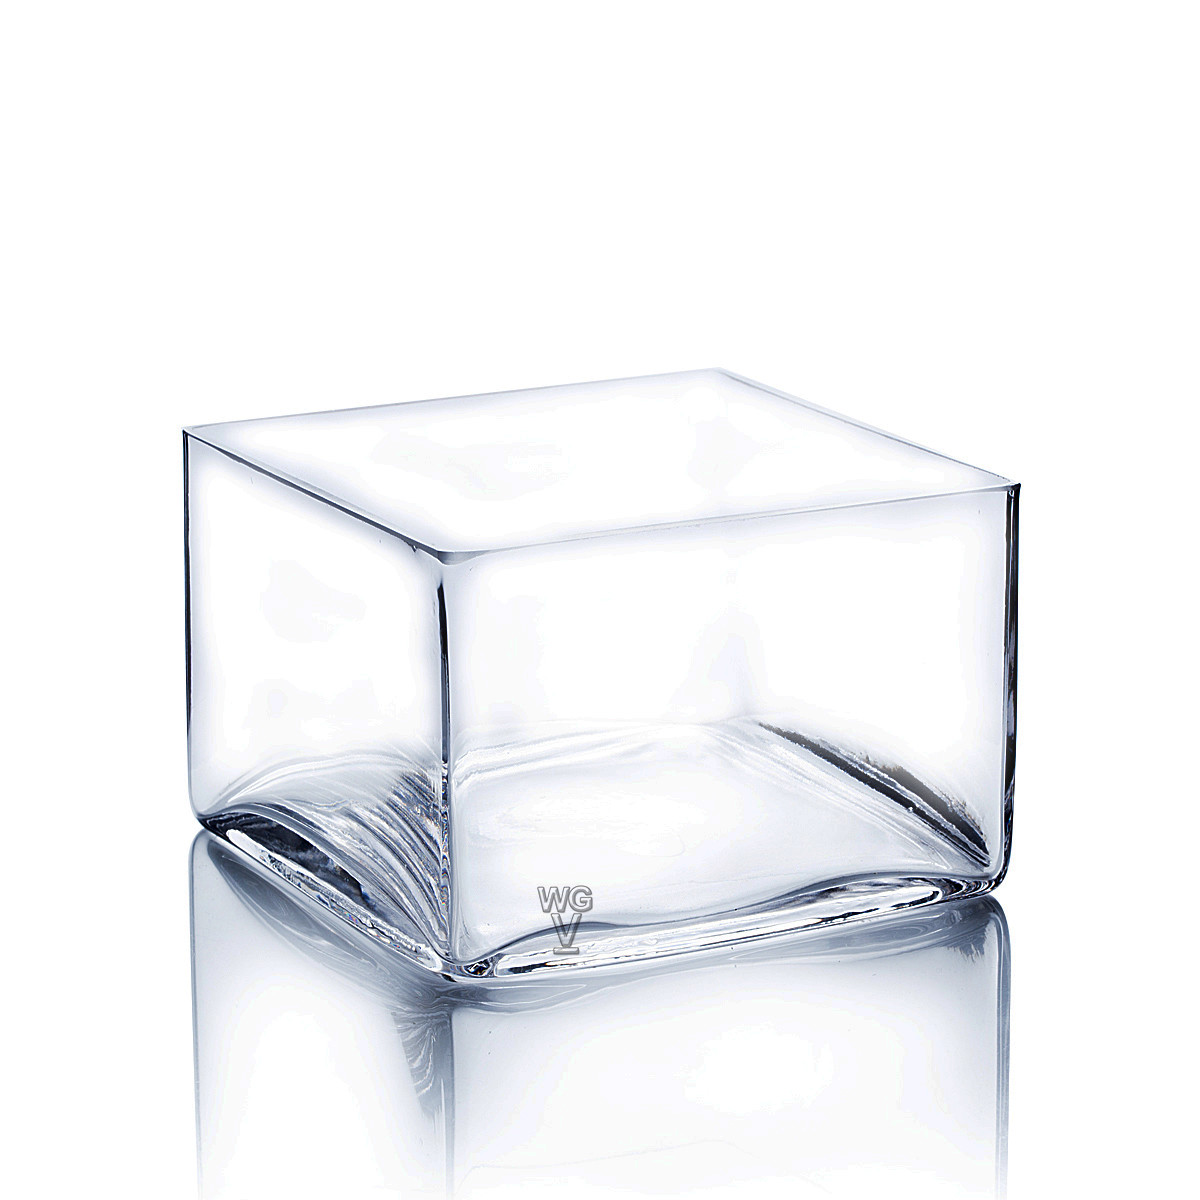 6x6 glass vase of square block glass vases city block square vase by wgv international with block square pan vase 6 inches by 4 wholesale glass vases